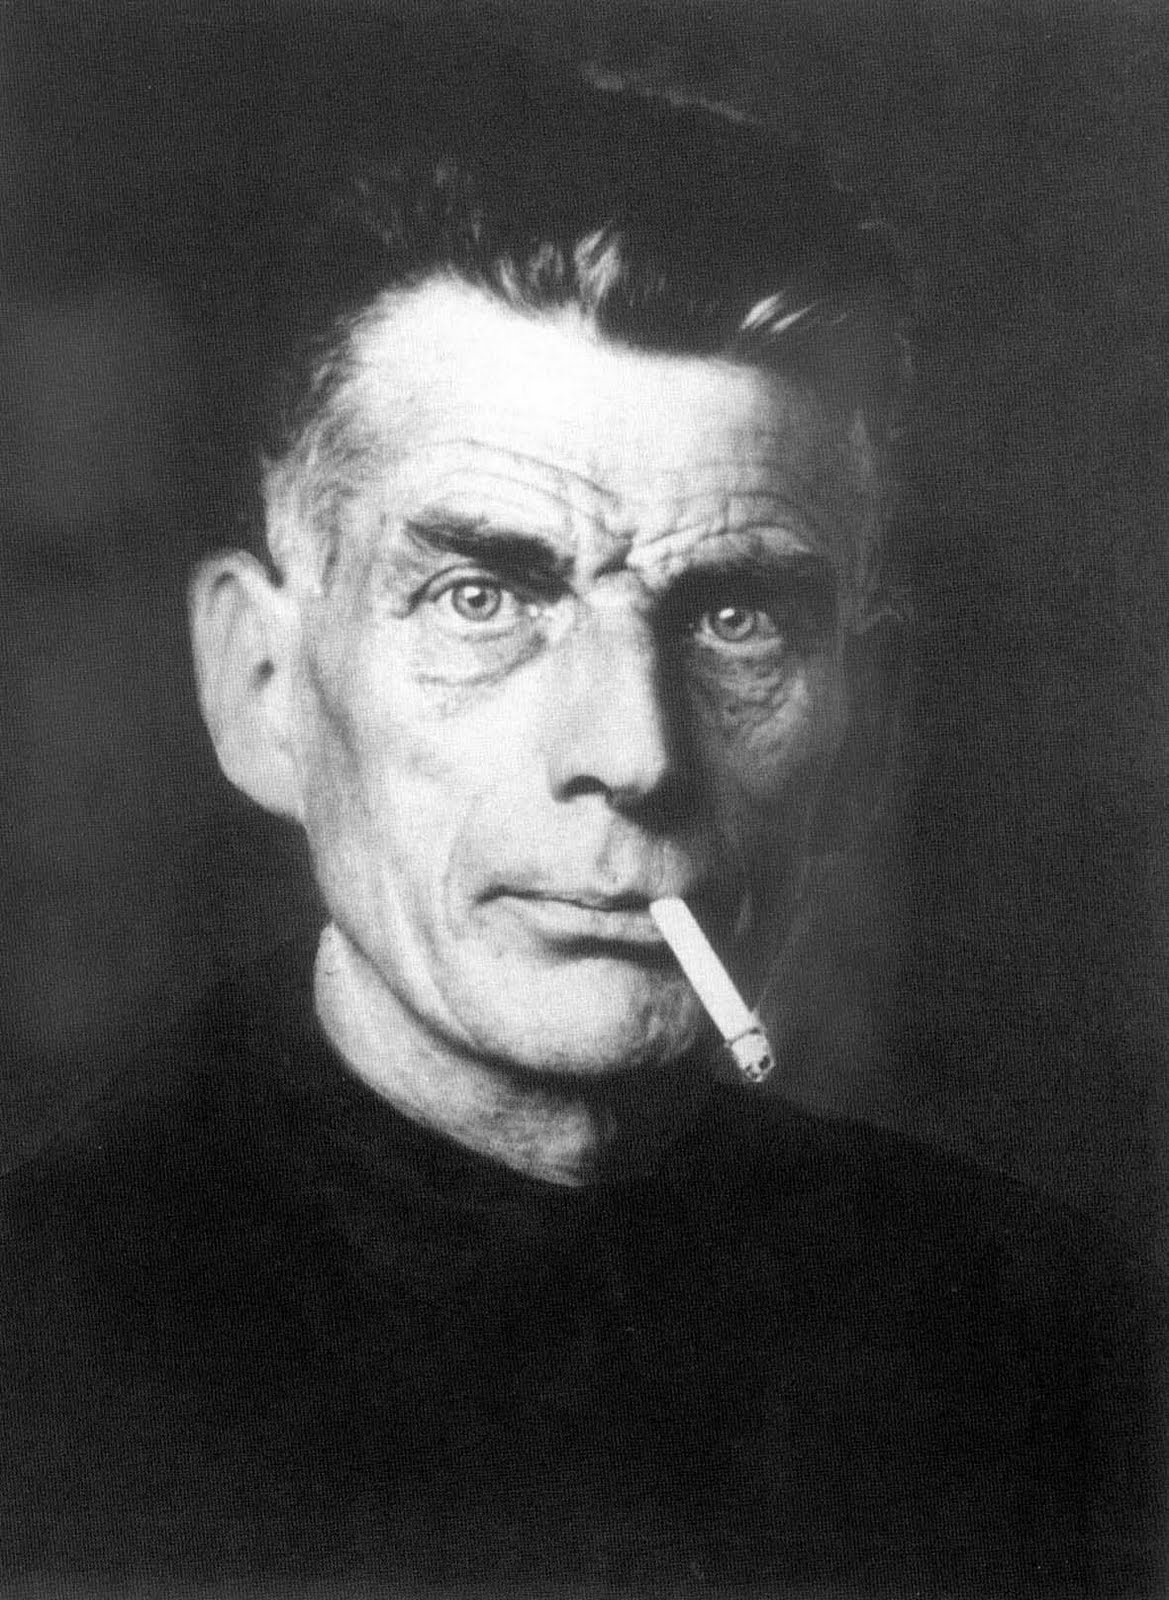 samuel beckett Waiting for godot (/ ˈ ɡ ɒ d oʊ / god-oh) is a play by samuel beckett, in which two characters, vladimir (didi) and estragon (gogo), wait for the arrival of someone named godot who never arrives, and while waiting they engage in a variety of discussions and encounter three other characters waiting for godot is beckett's translation of his own original french play, en attendant godot, and.